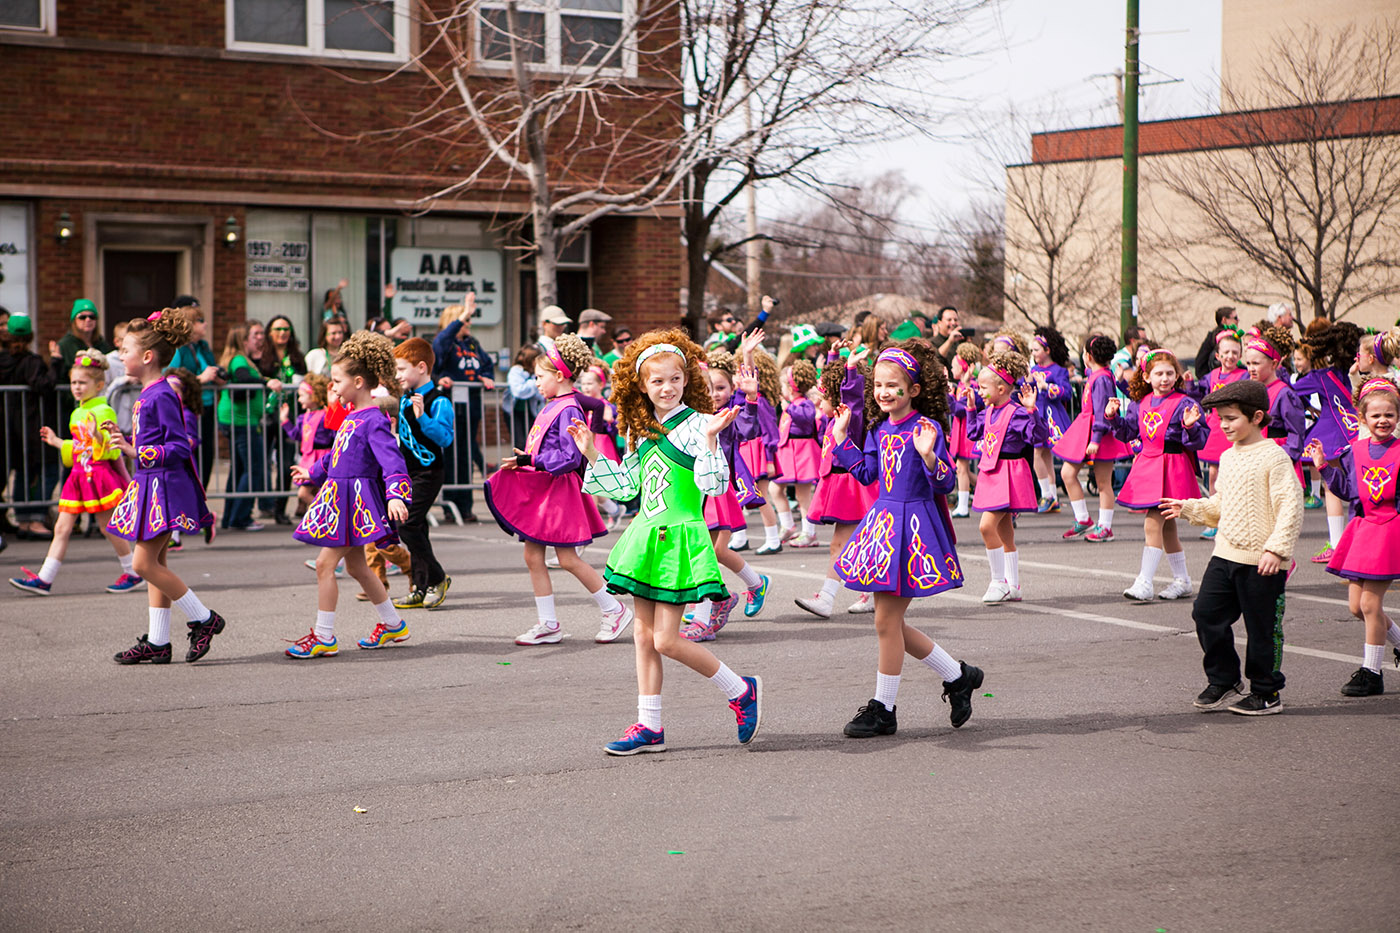 Irish Dancers at the Chicago South Side Irish Parade 2015 - St. Patrick's Day